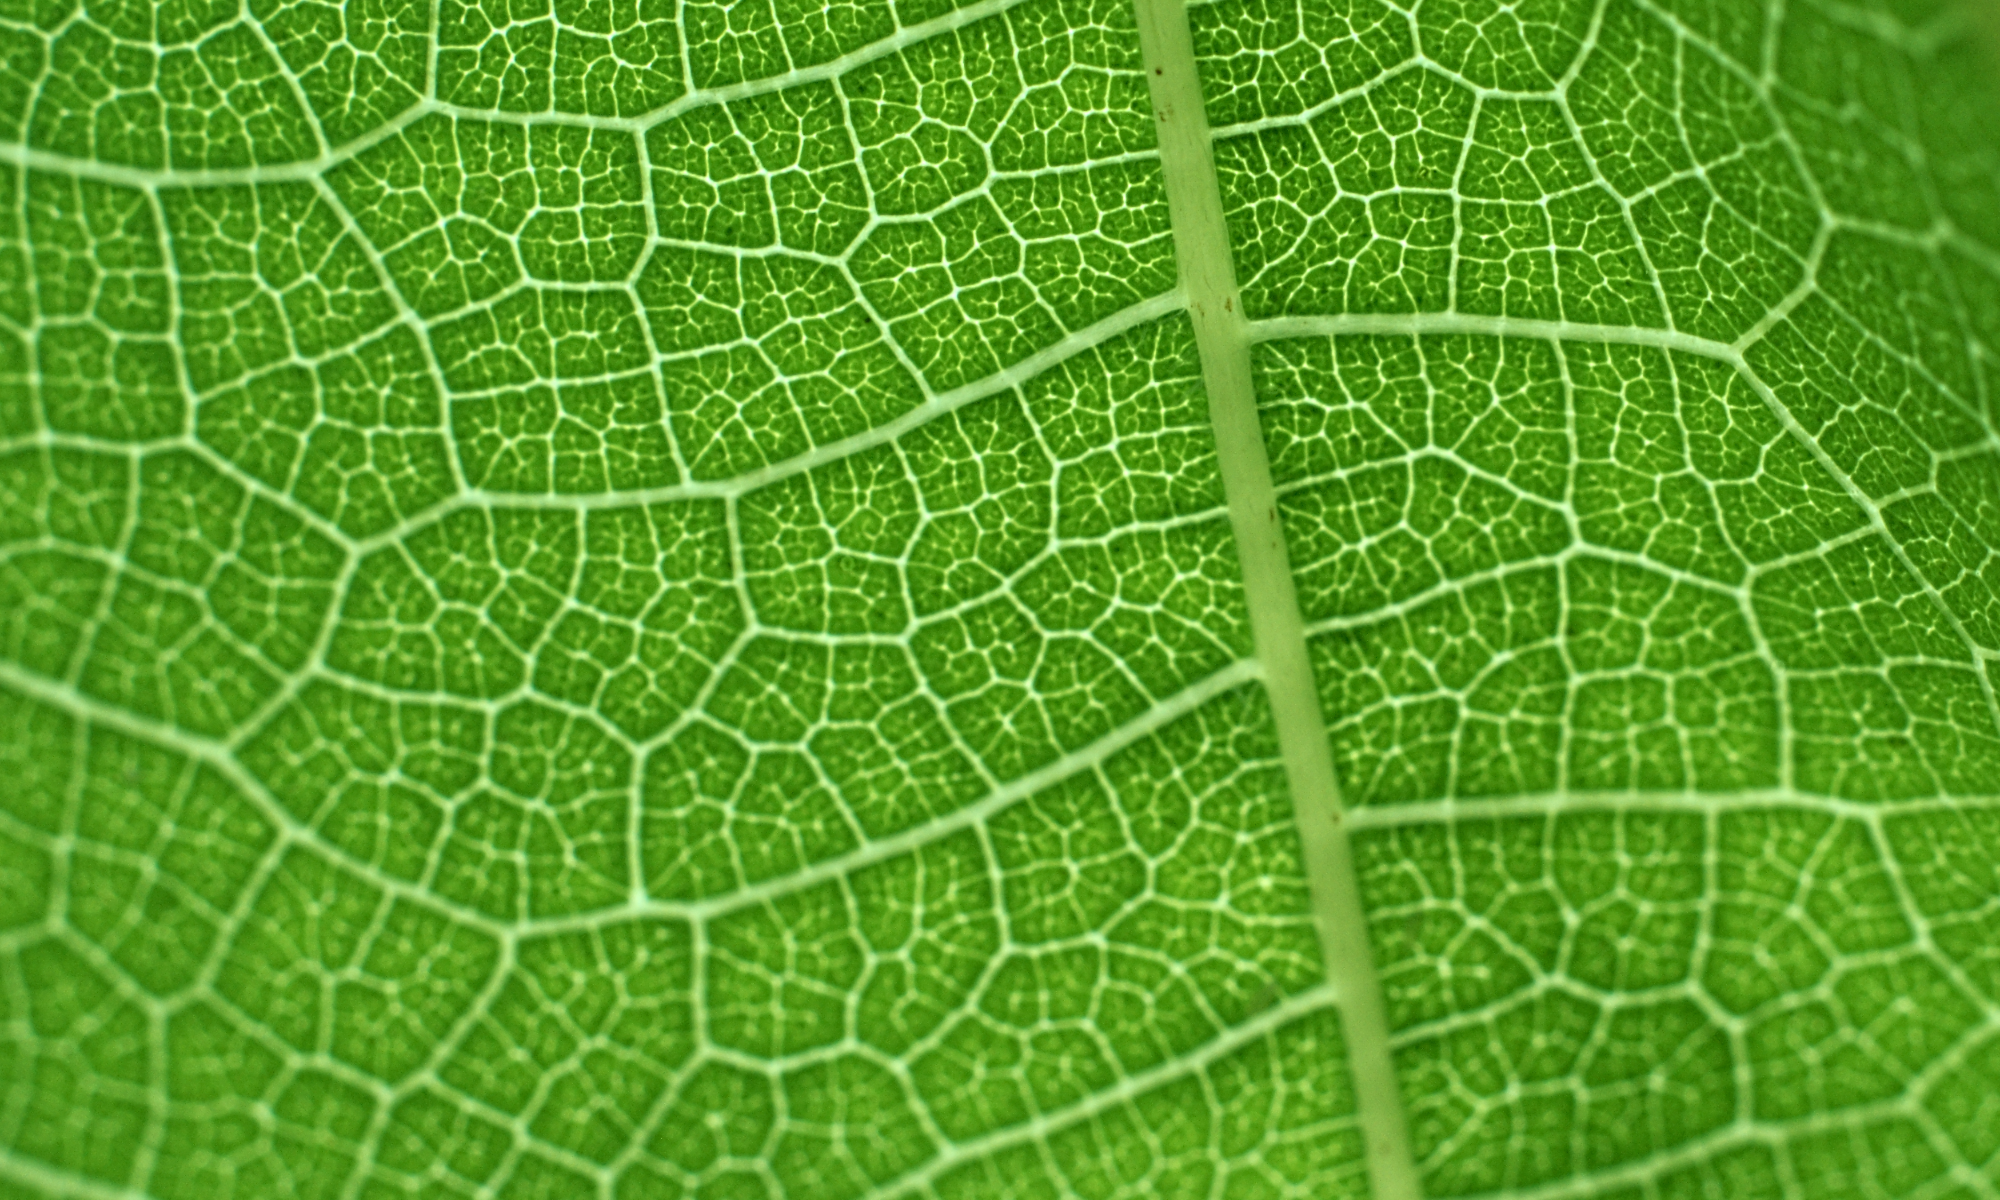 connected paths on a lime leaf